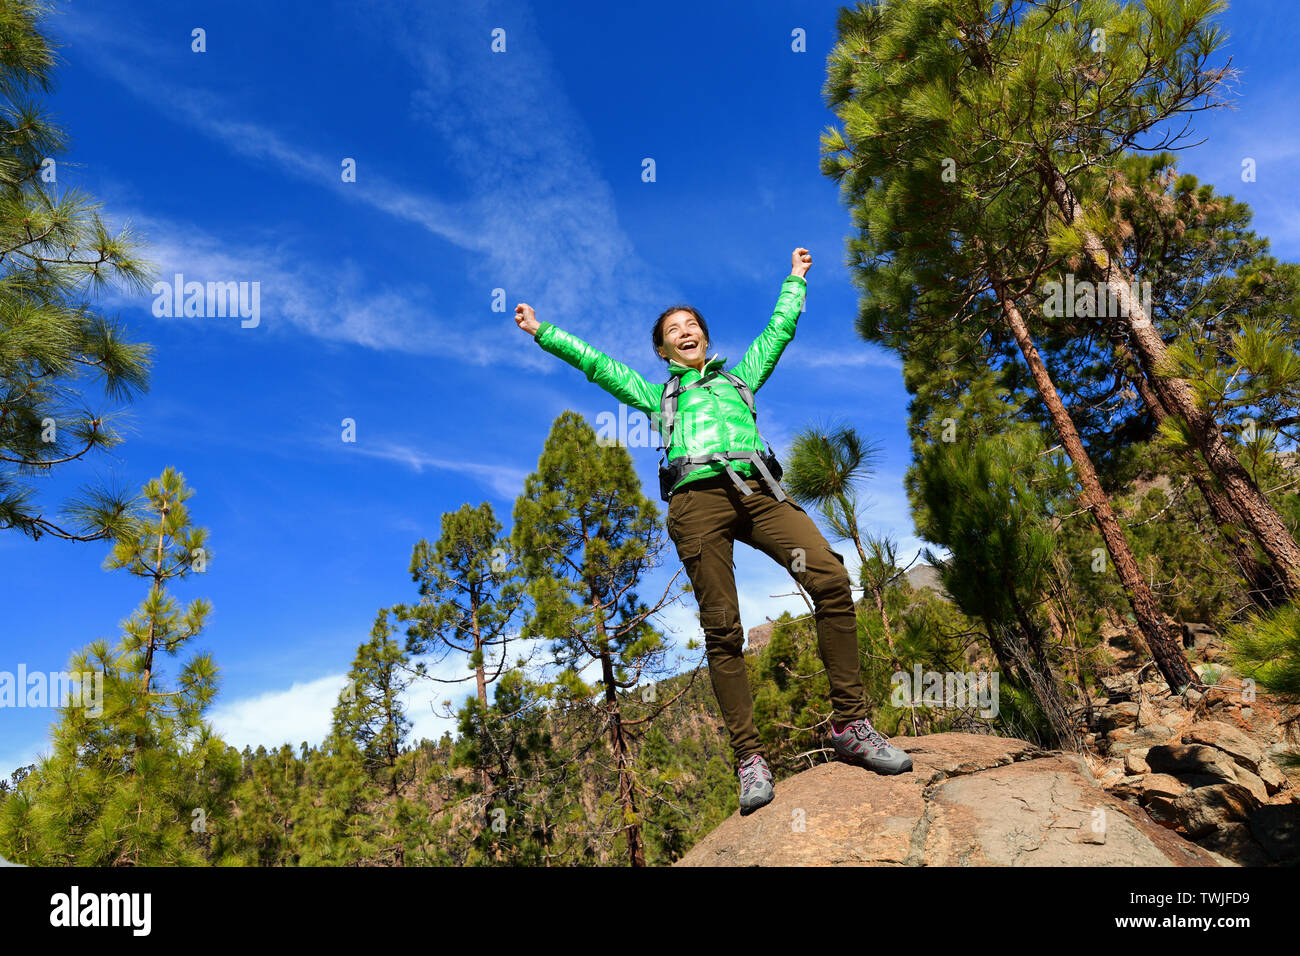 Hiking woman reaching summit top cheering celebrating on mountain top with arms up outstretched towards the sky. Happy female hiker. Stock Photo